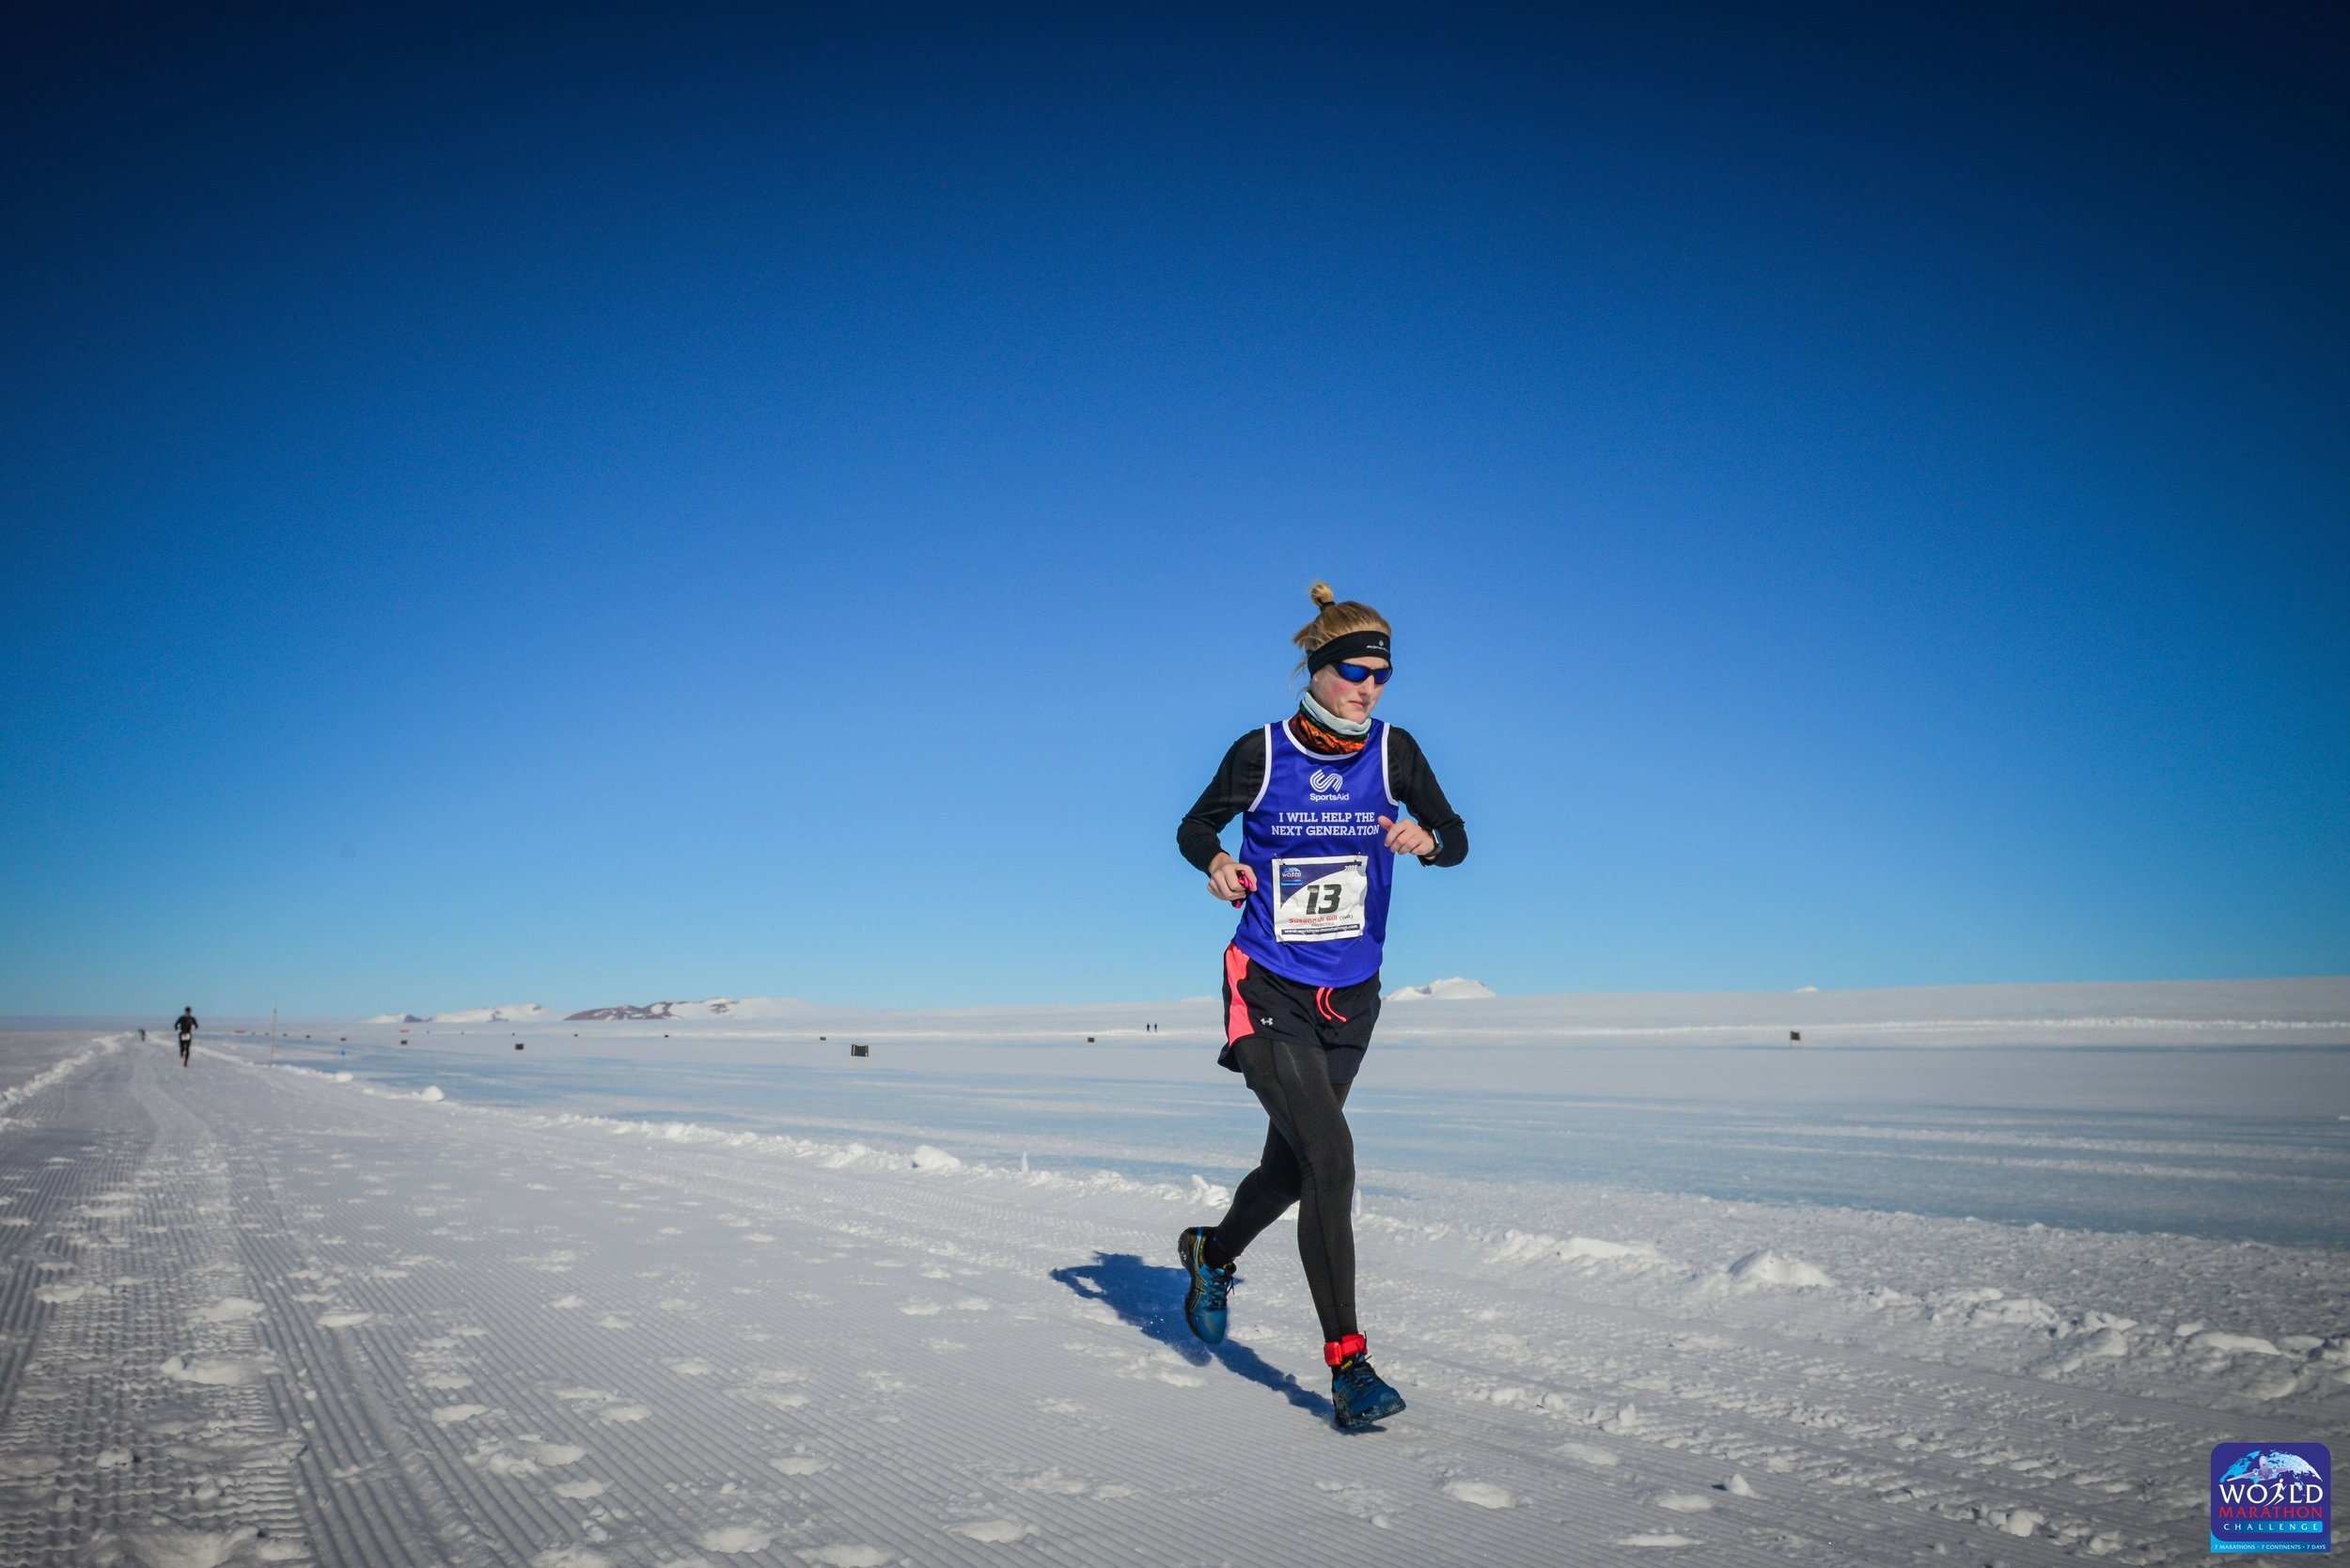 When running takes you all the way to the beautiful snow of Antarctica…..Race 1 of the 2019 World Marathon Challenge.